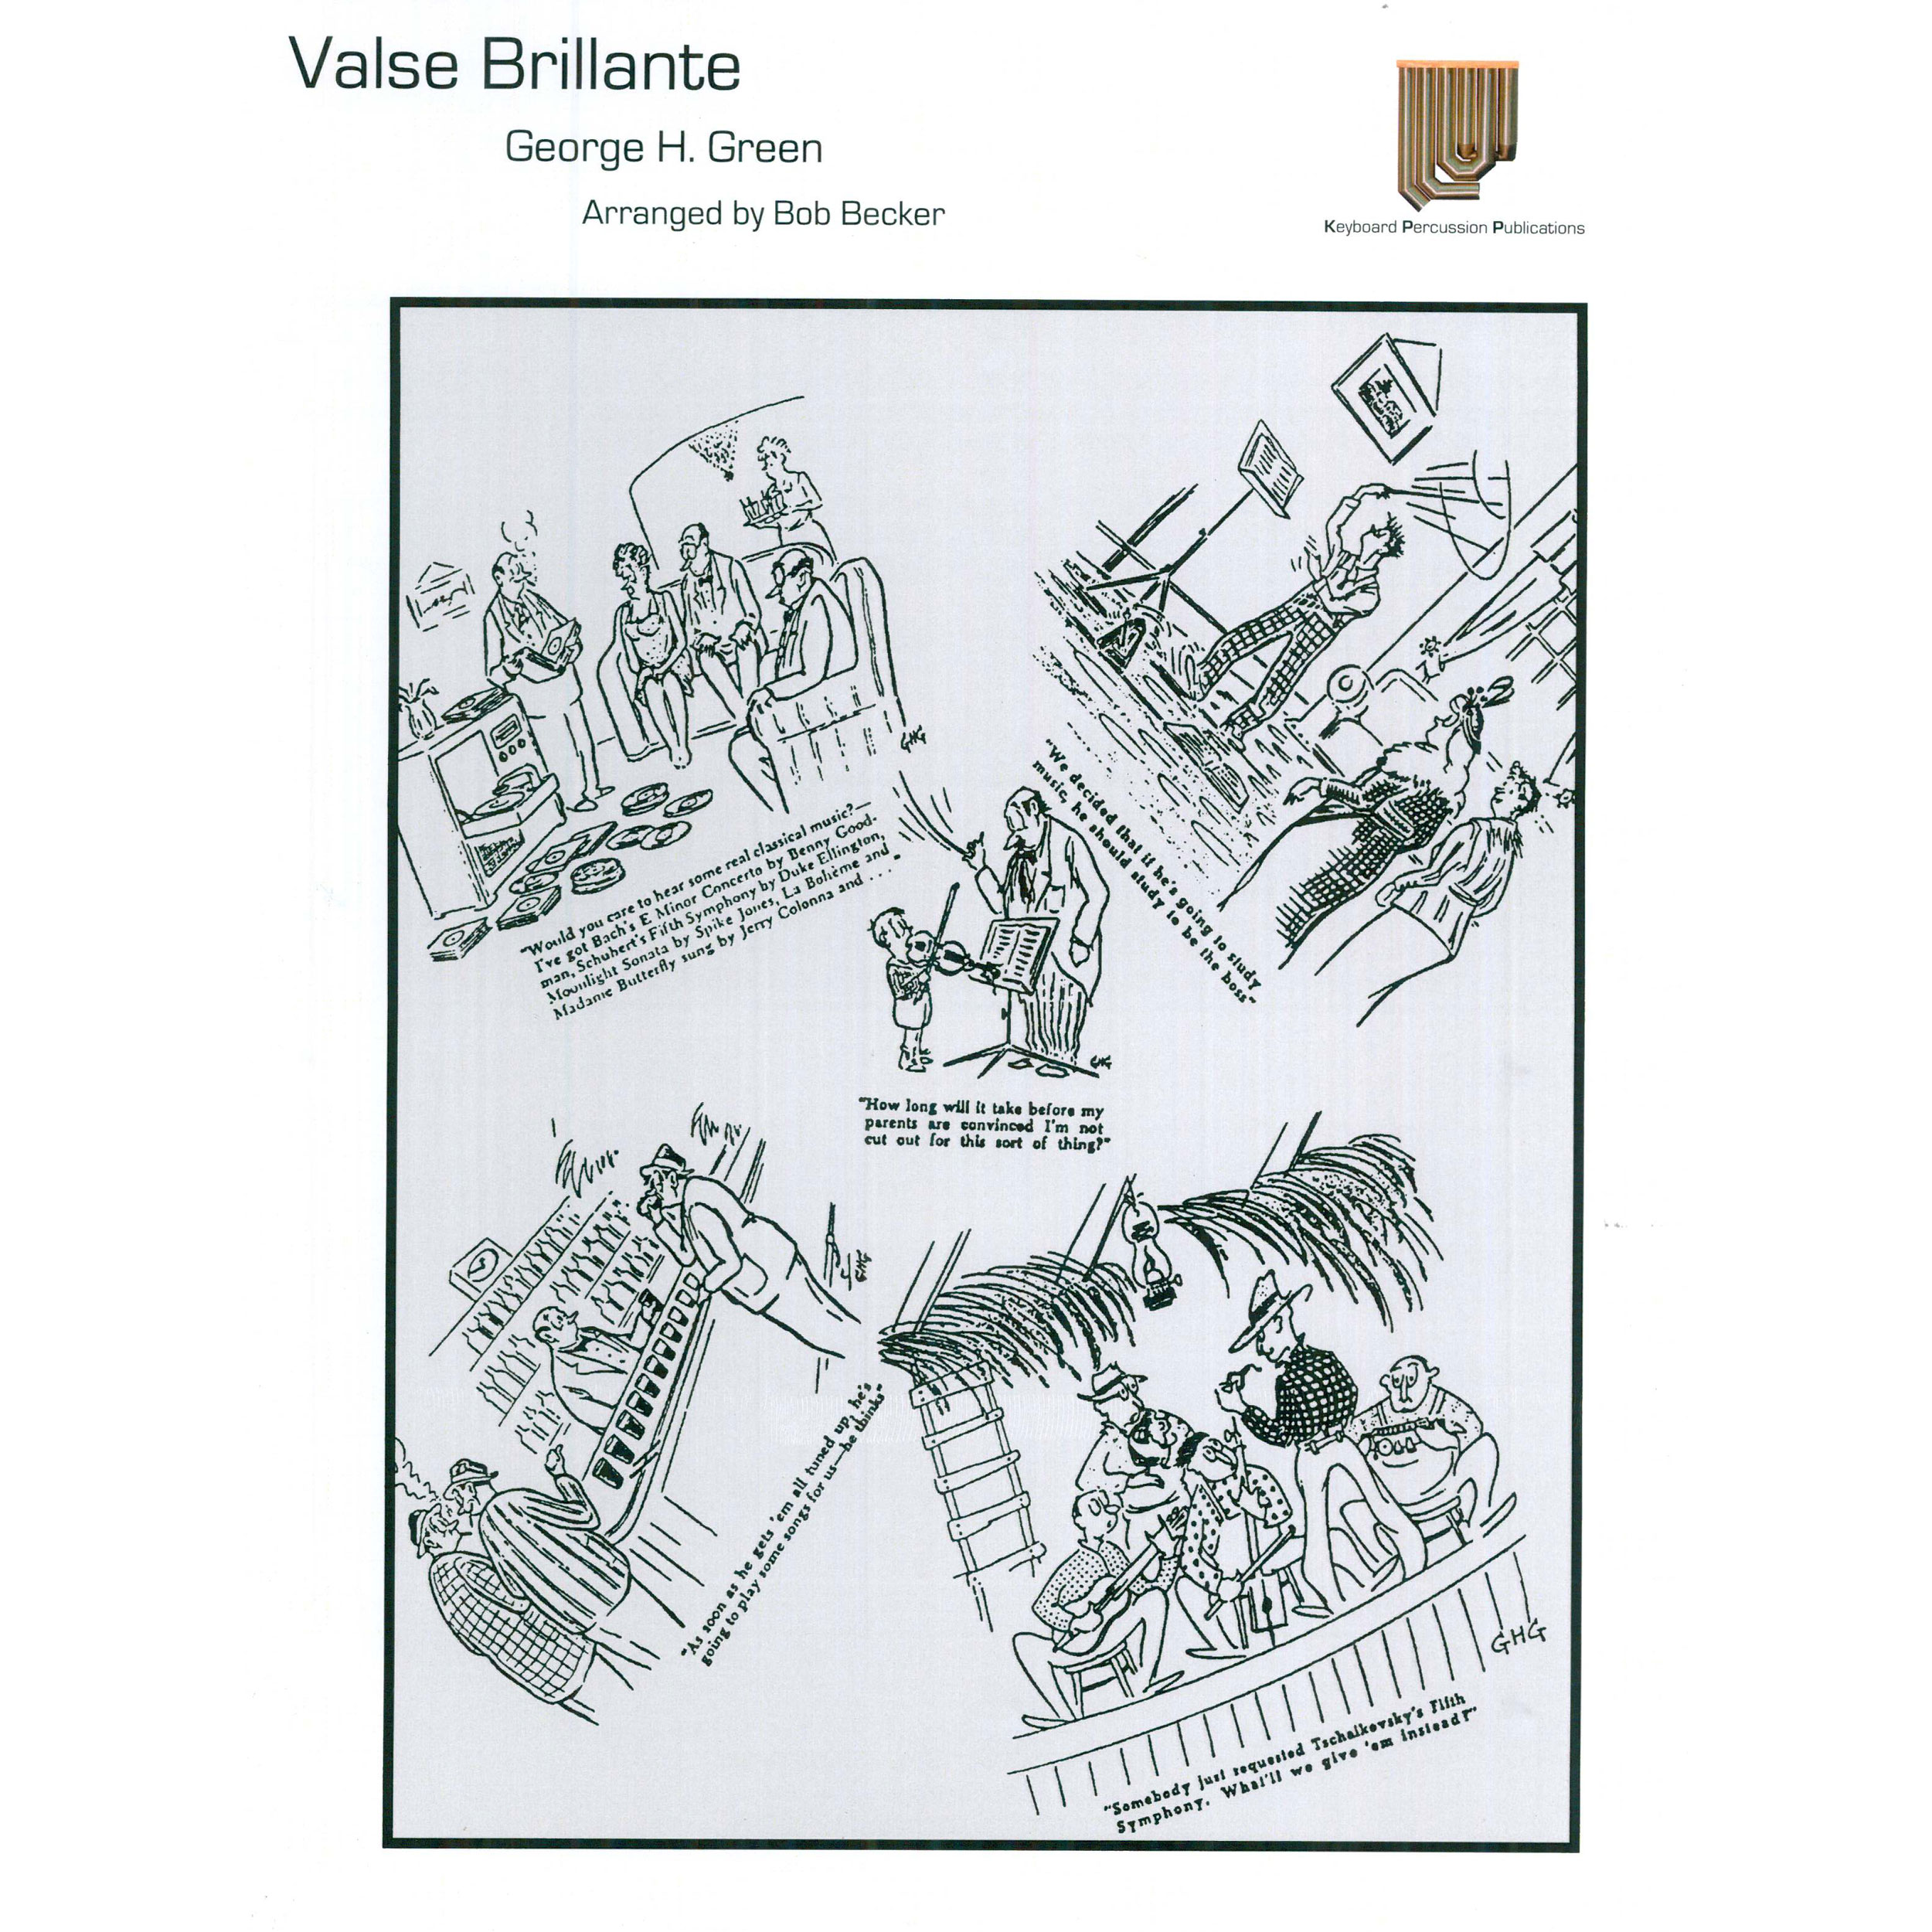 Valse Brillant by George Hamilton Green arr. Bob Becker